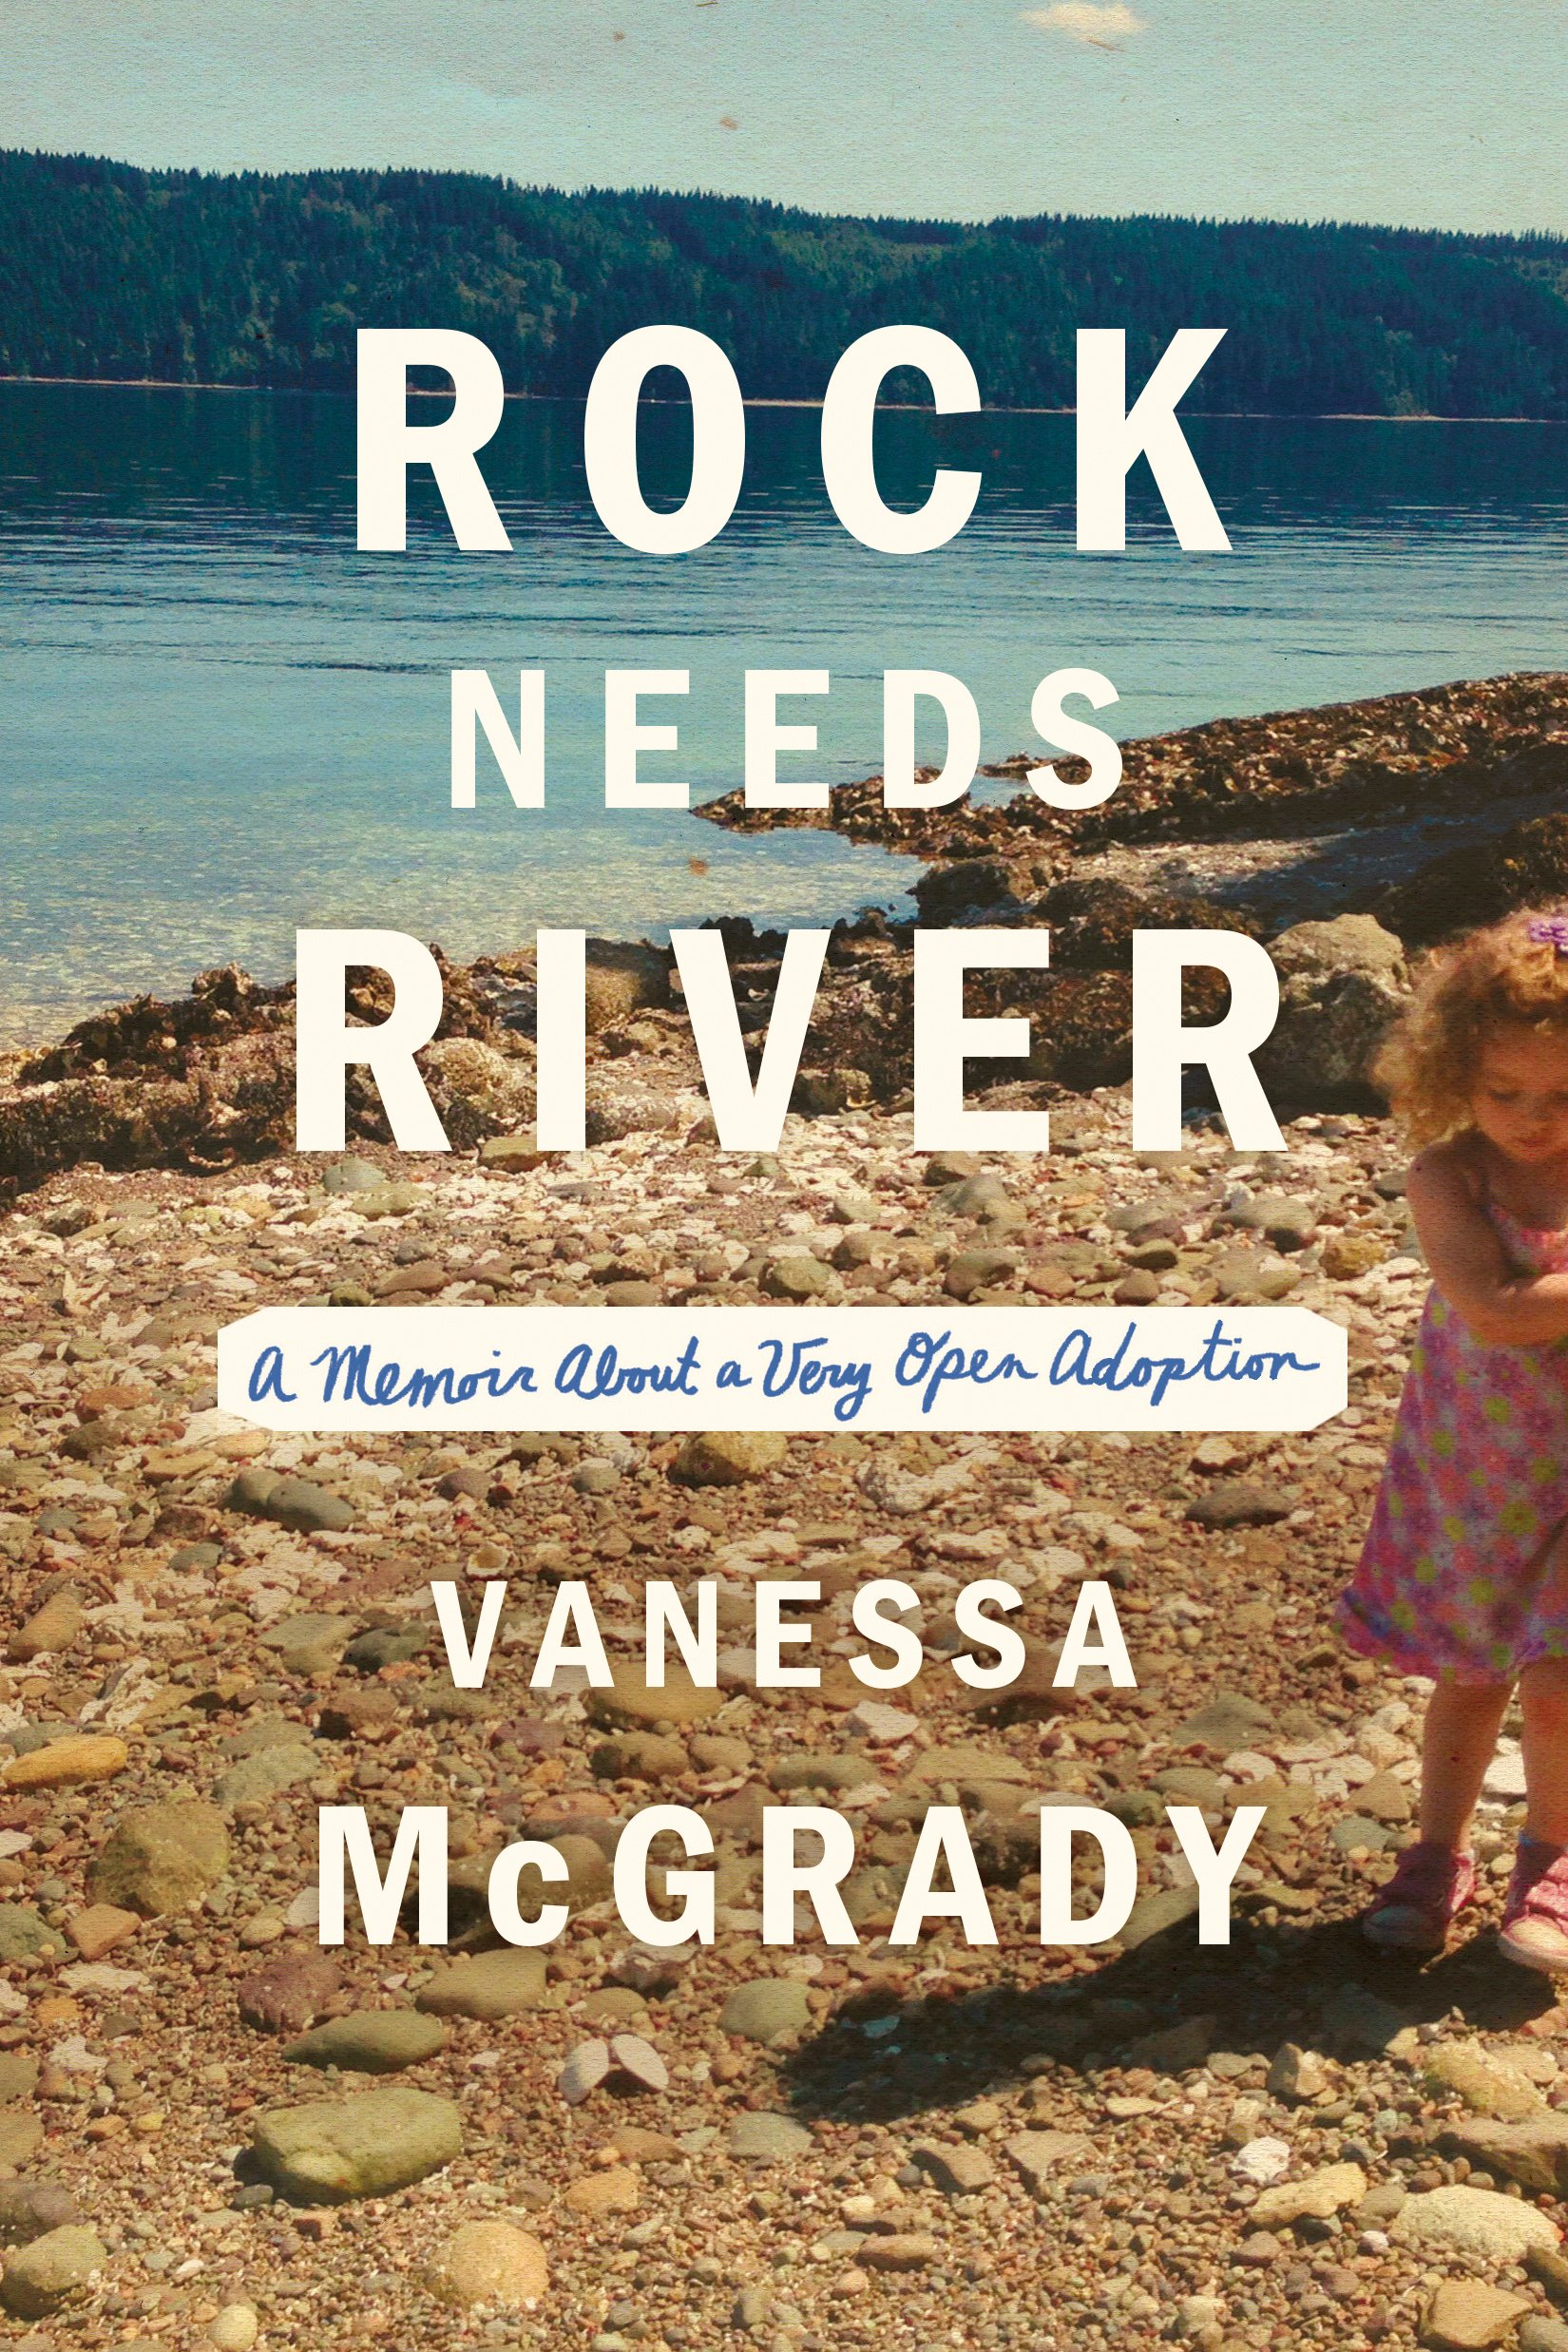 The cover of the book Rock Needs River: A Memoir About a Very Open Adoption